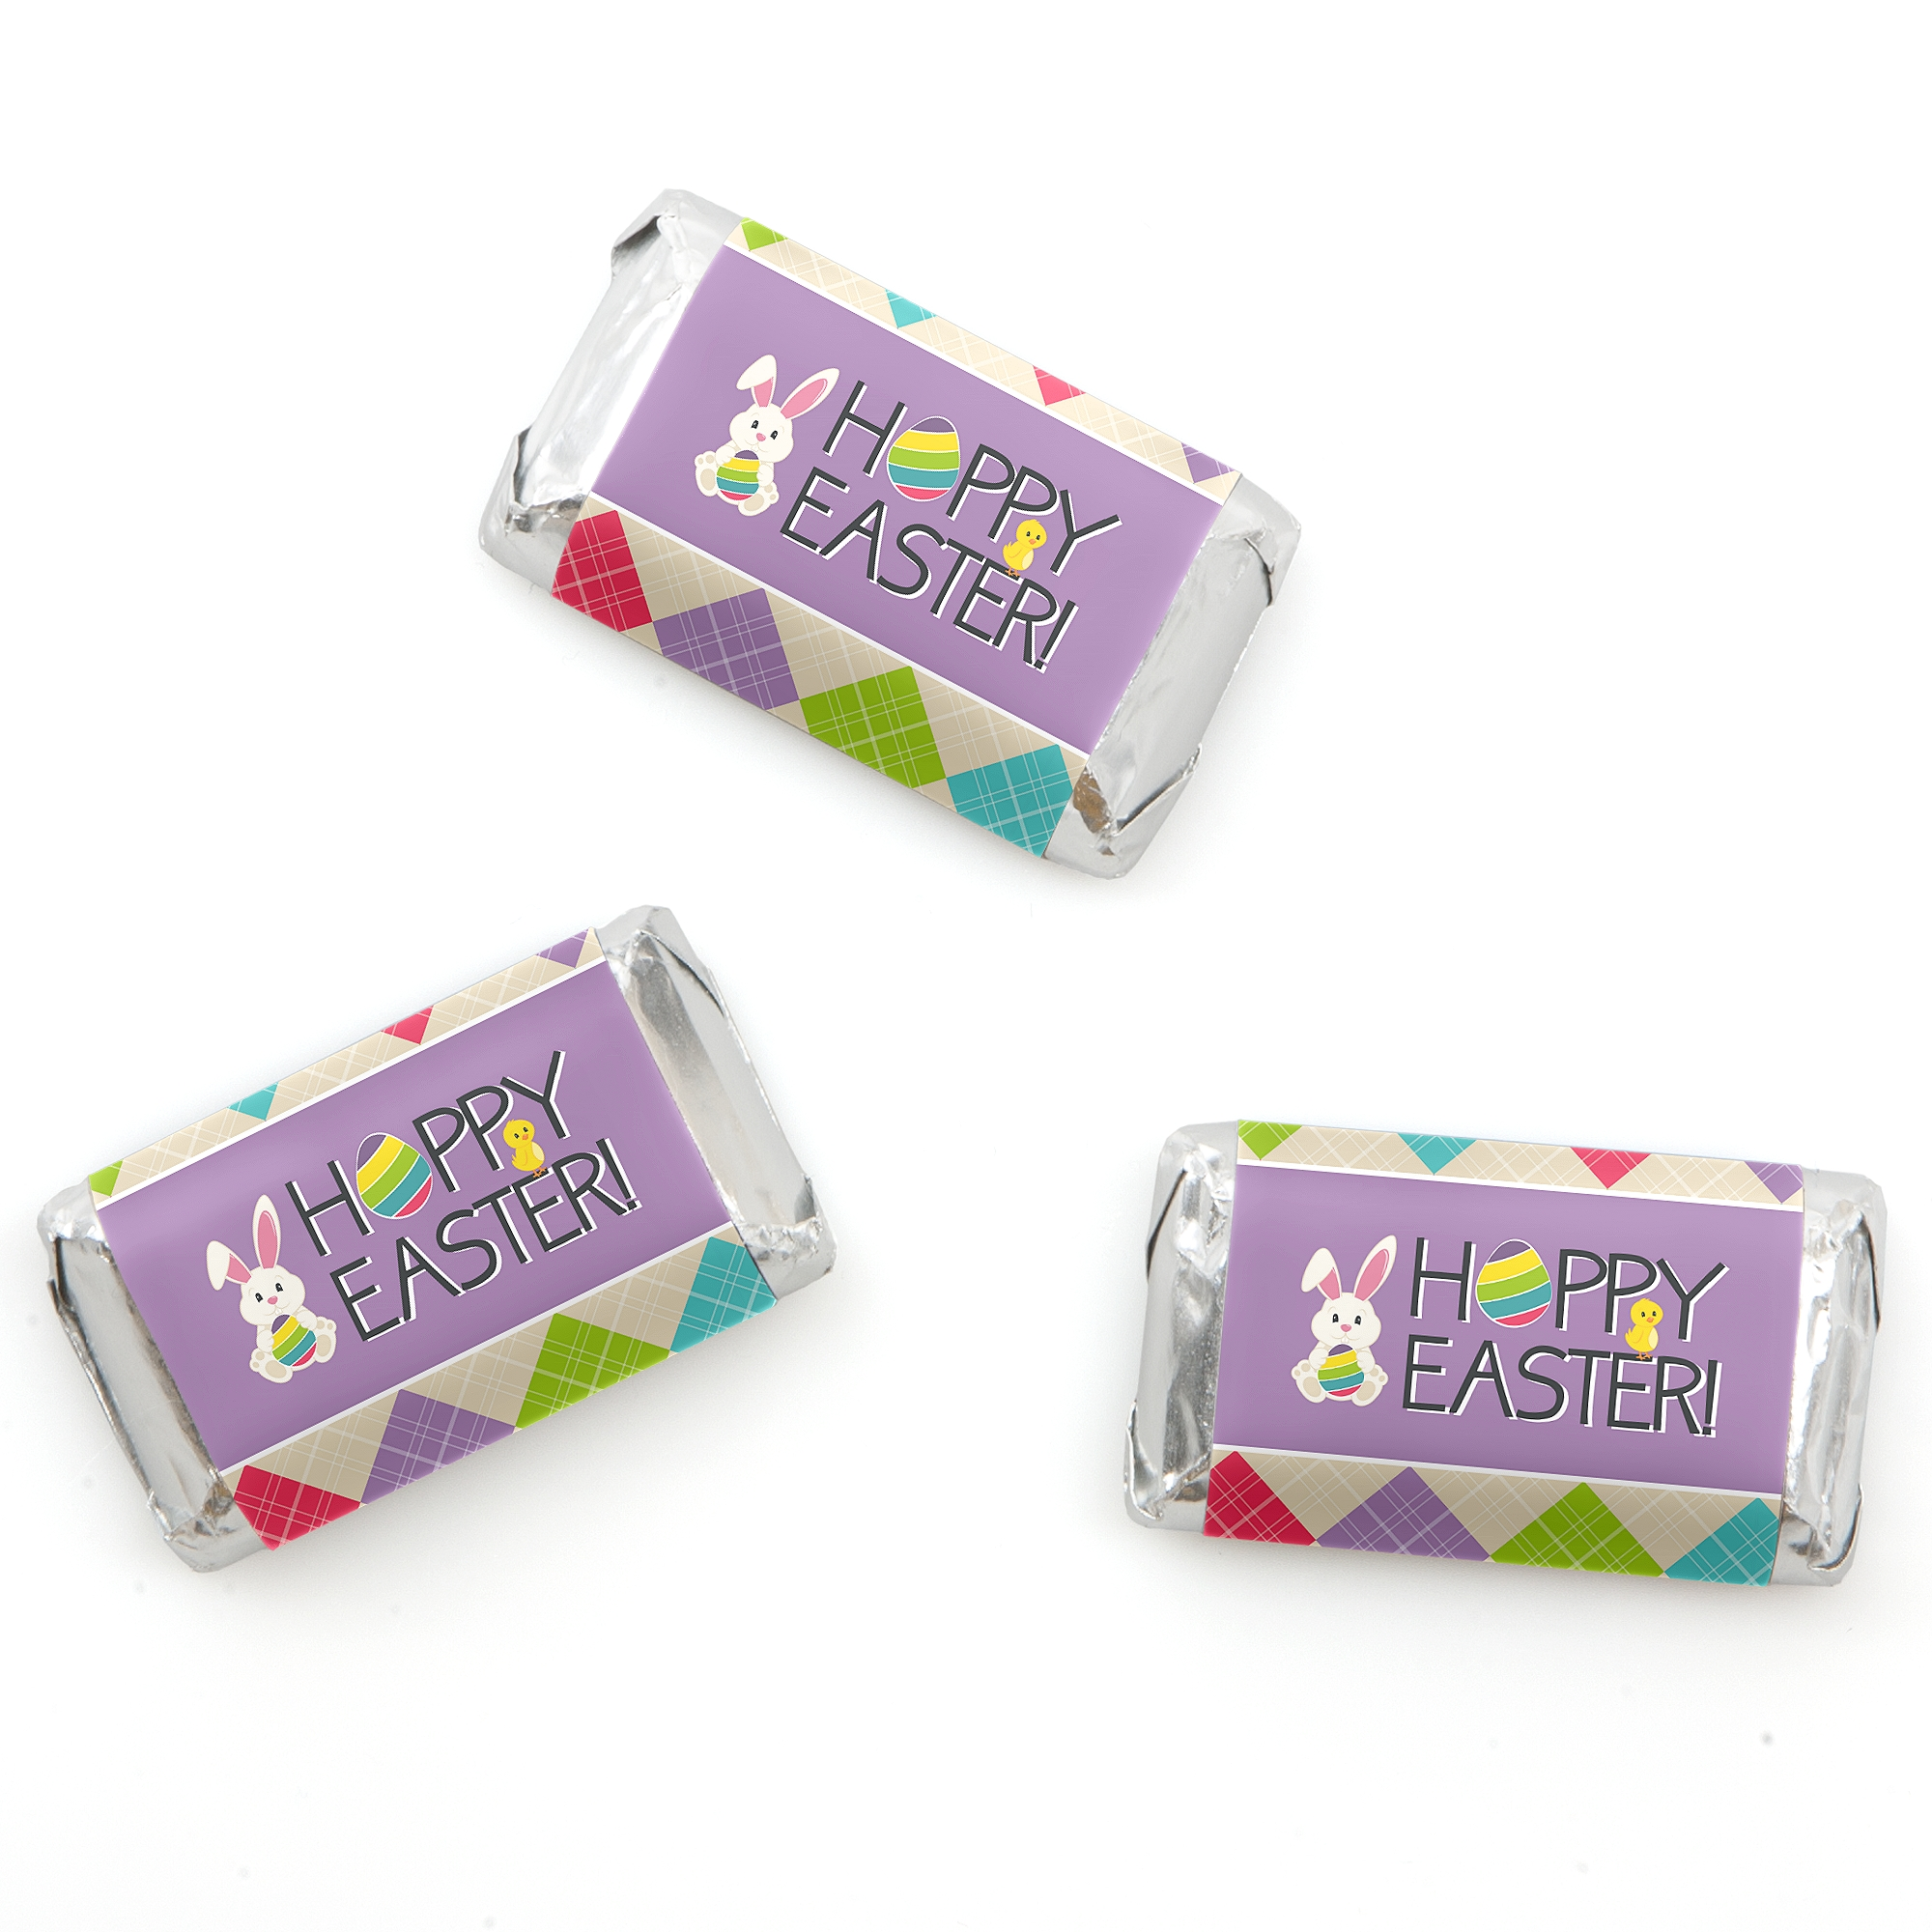 Hippity Hoppity - Mini Candy Bar Wrappers Easter Bunny Party Favors - 20 Count